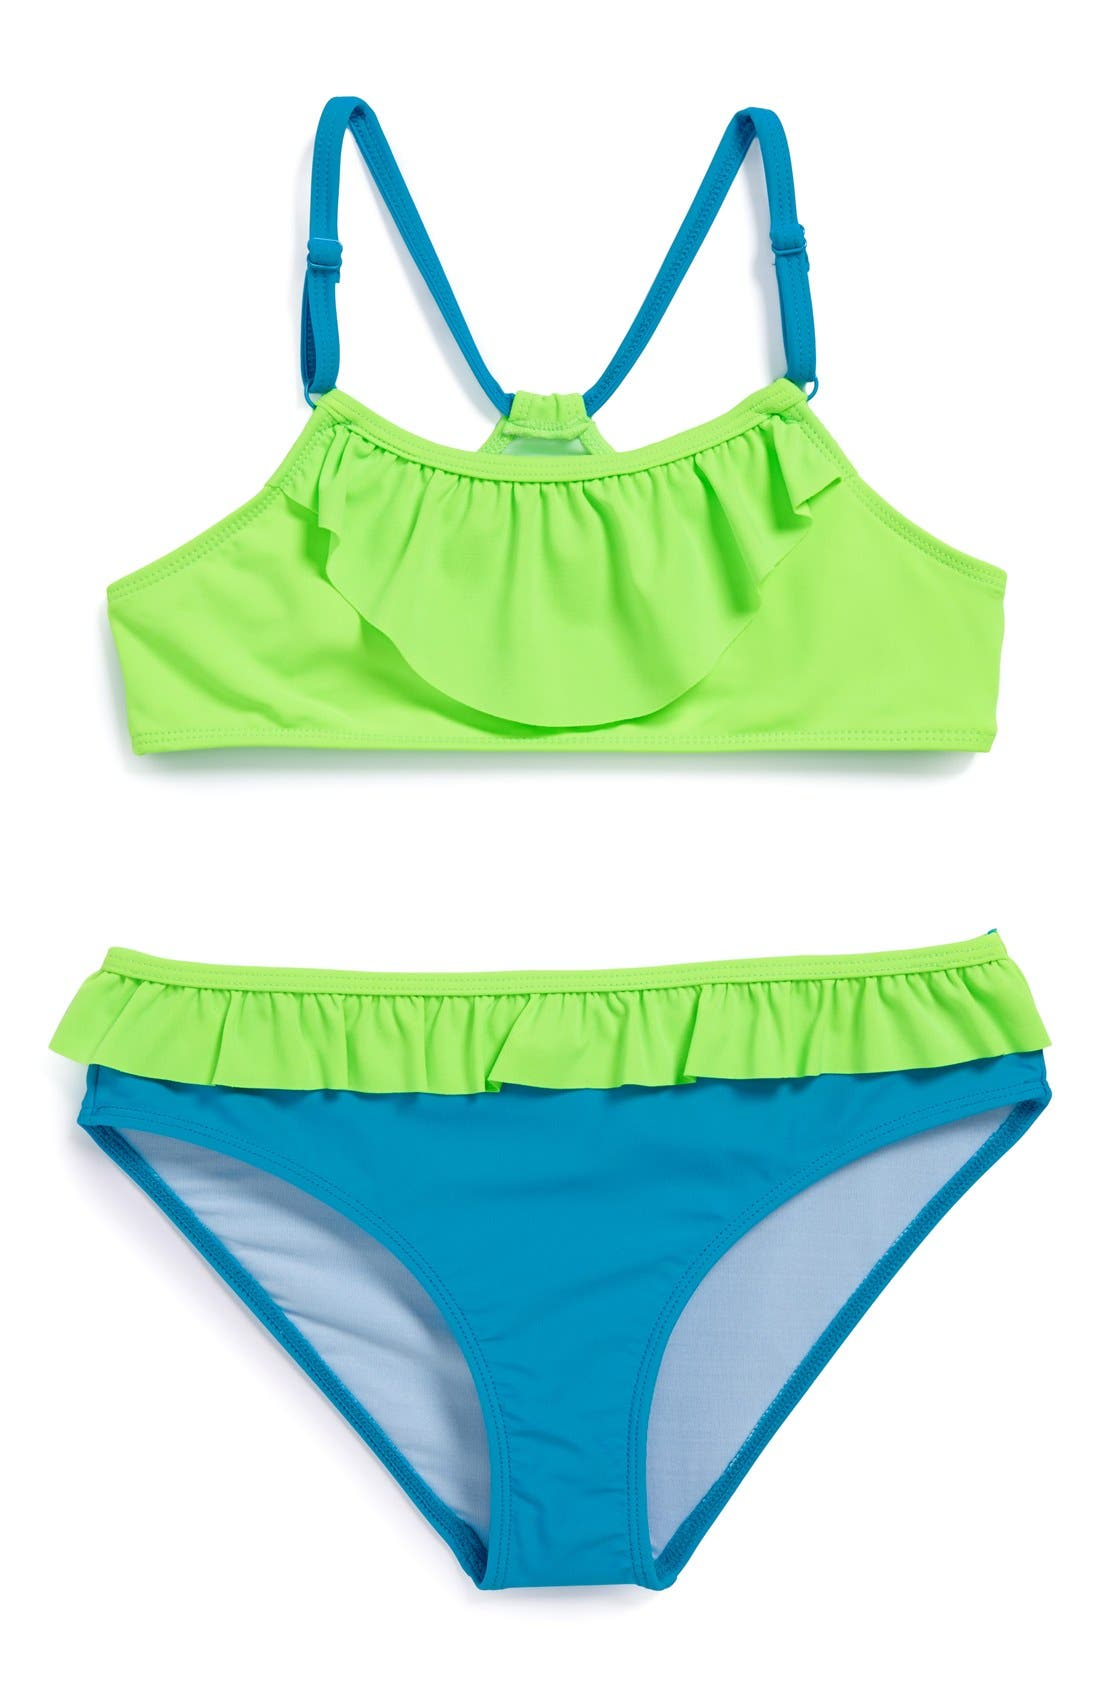 Alternate Image 1 Selected - Tucker + Tate 'Sunny' Two-Piece Swimsuit (Little Girls & Big Girls)